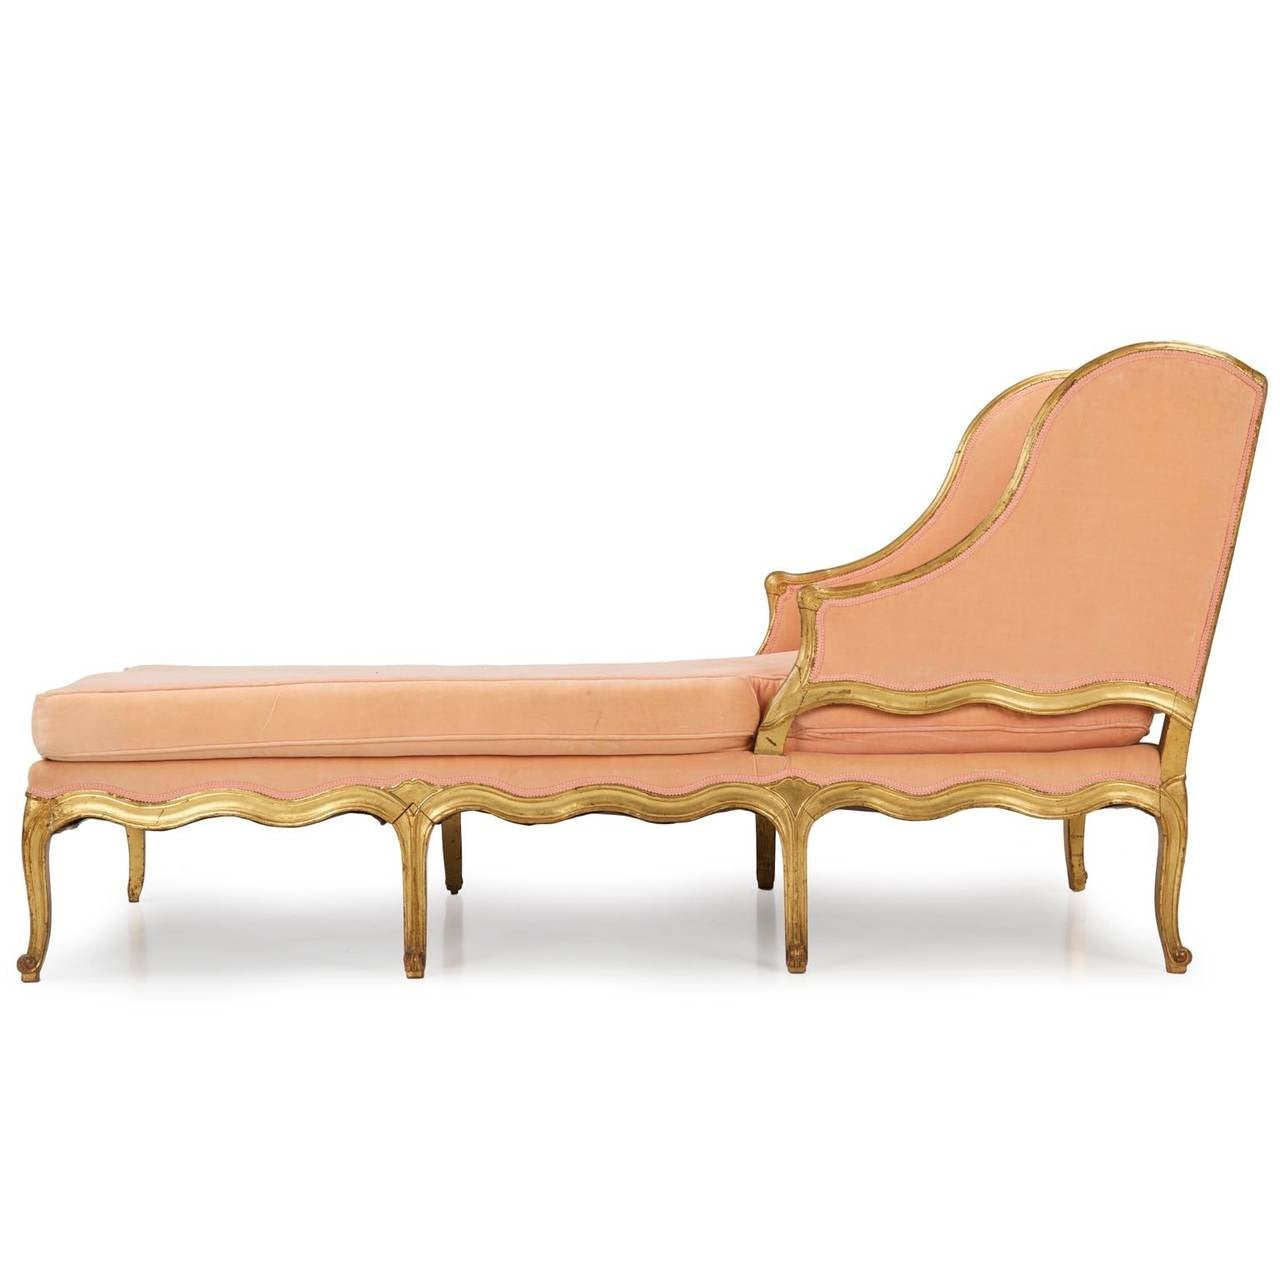 French Chaise French Chaise Lounge Sofa Beautiful French Chaise Lounge